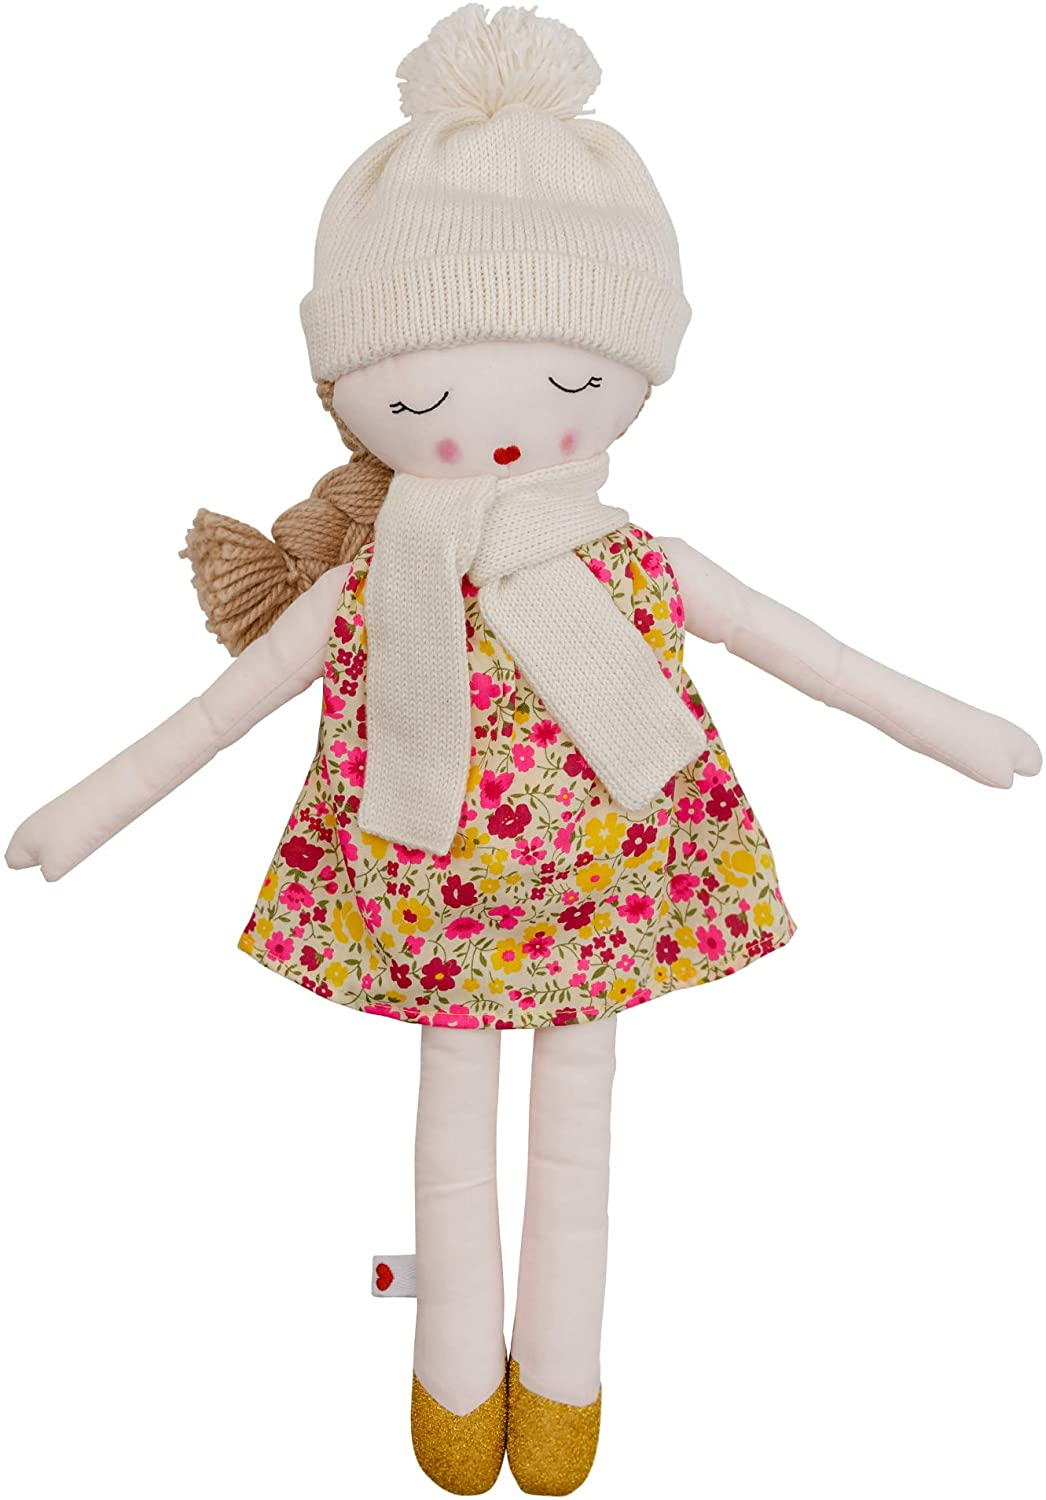 Hearts of Yarn Autumn Plush Handmade Doll for Girls Soft Toy for Toddlers, Infants and Babies 19 inches Tall Extra Large, Handmade First Baby Doll and Toy Cute Nursery Room Decor